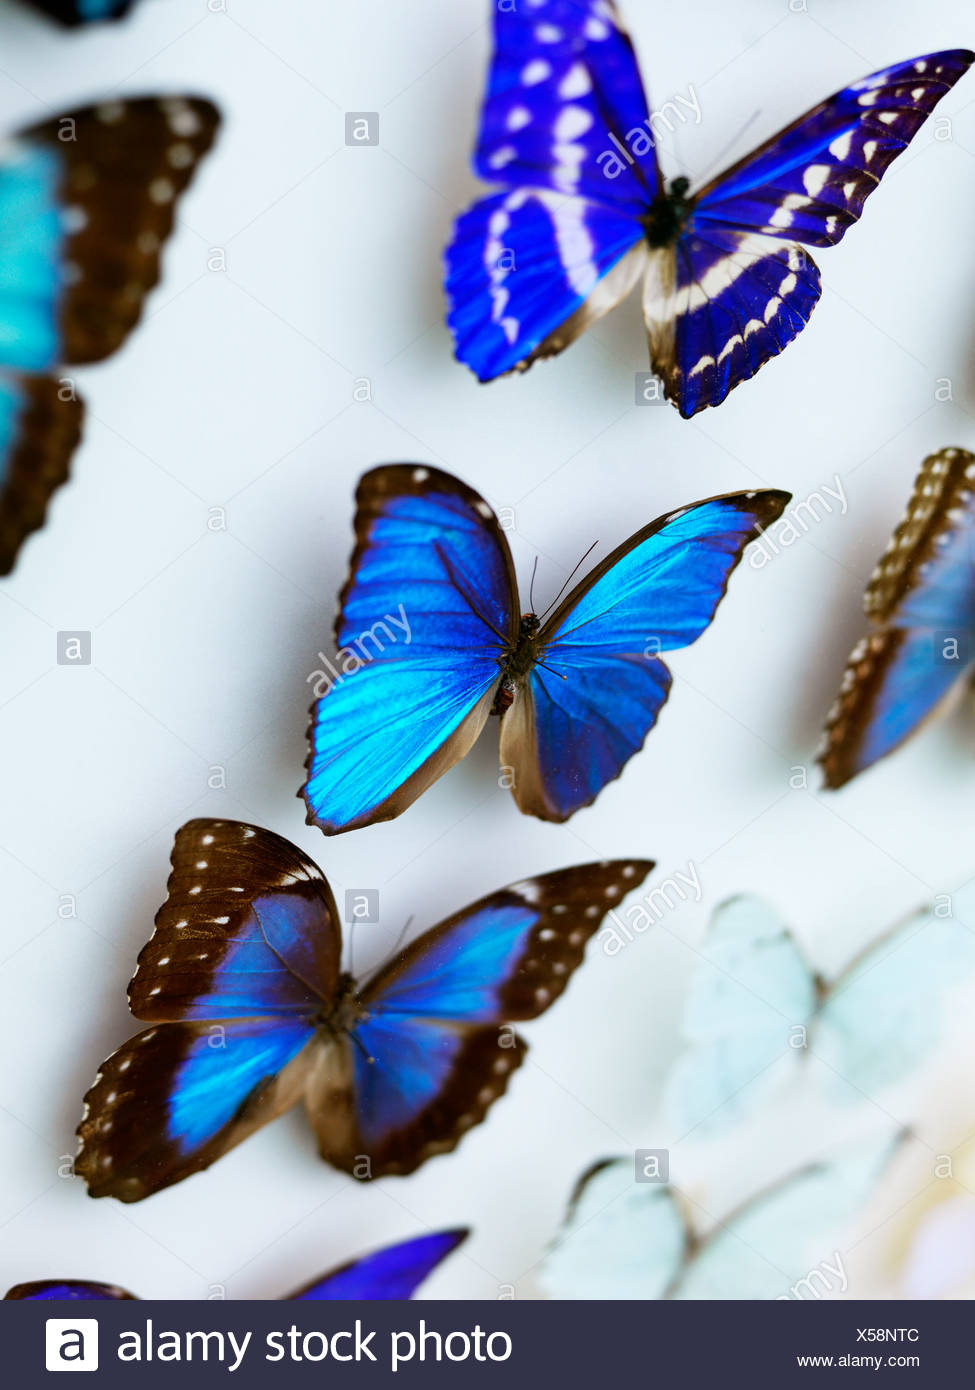 Blue butterfly collection - Stock Image